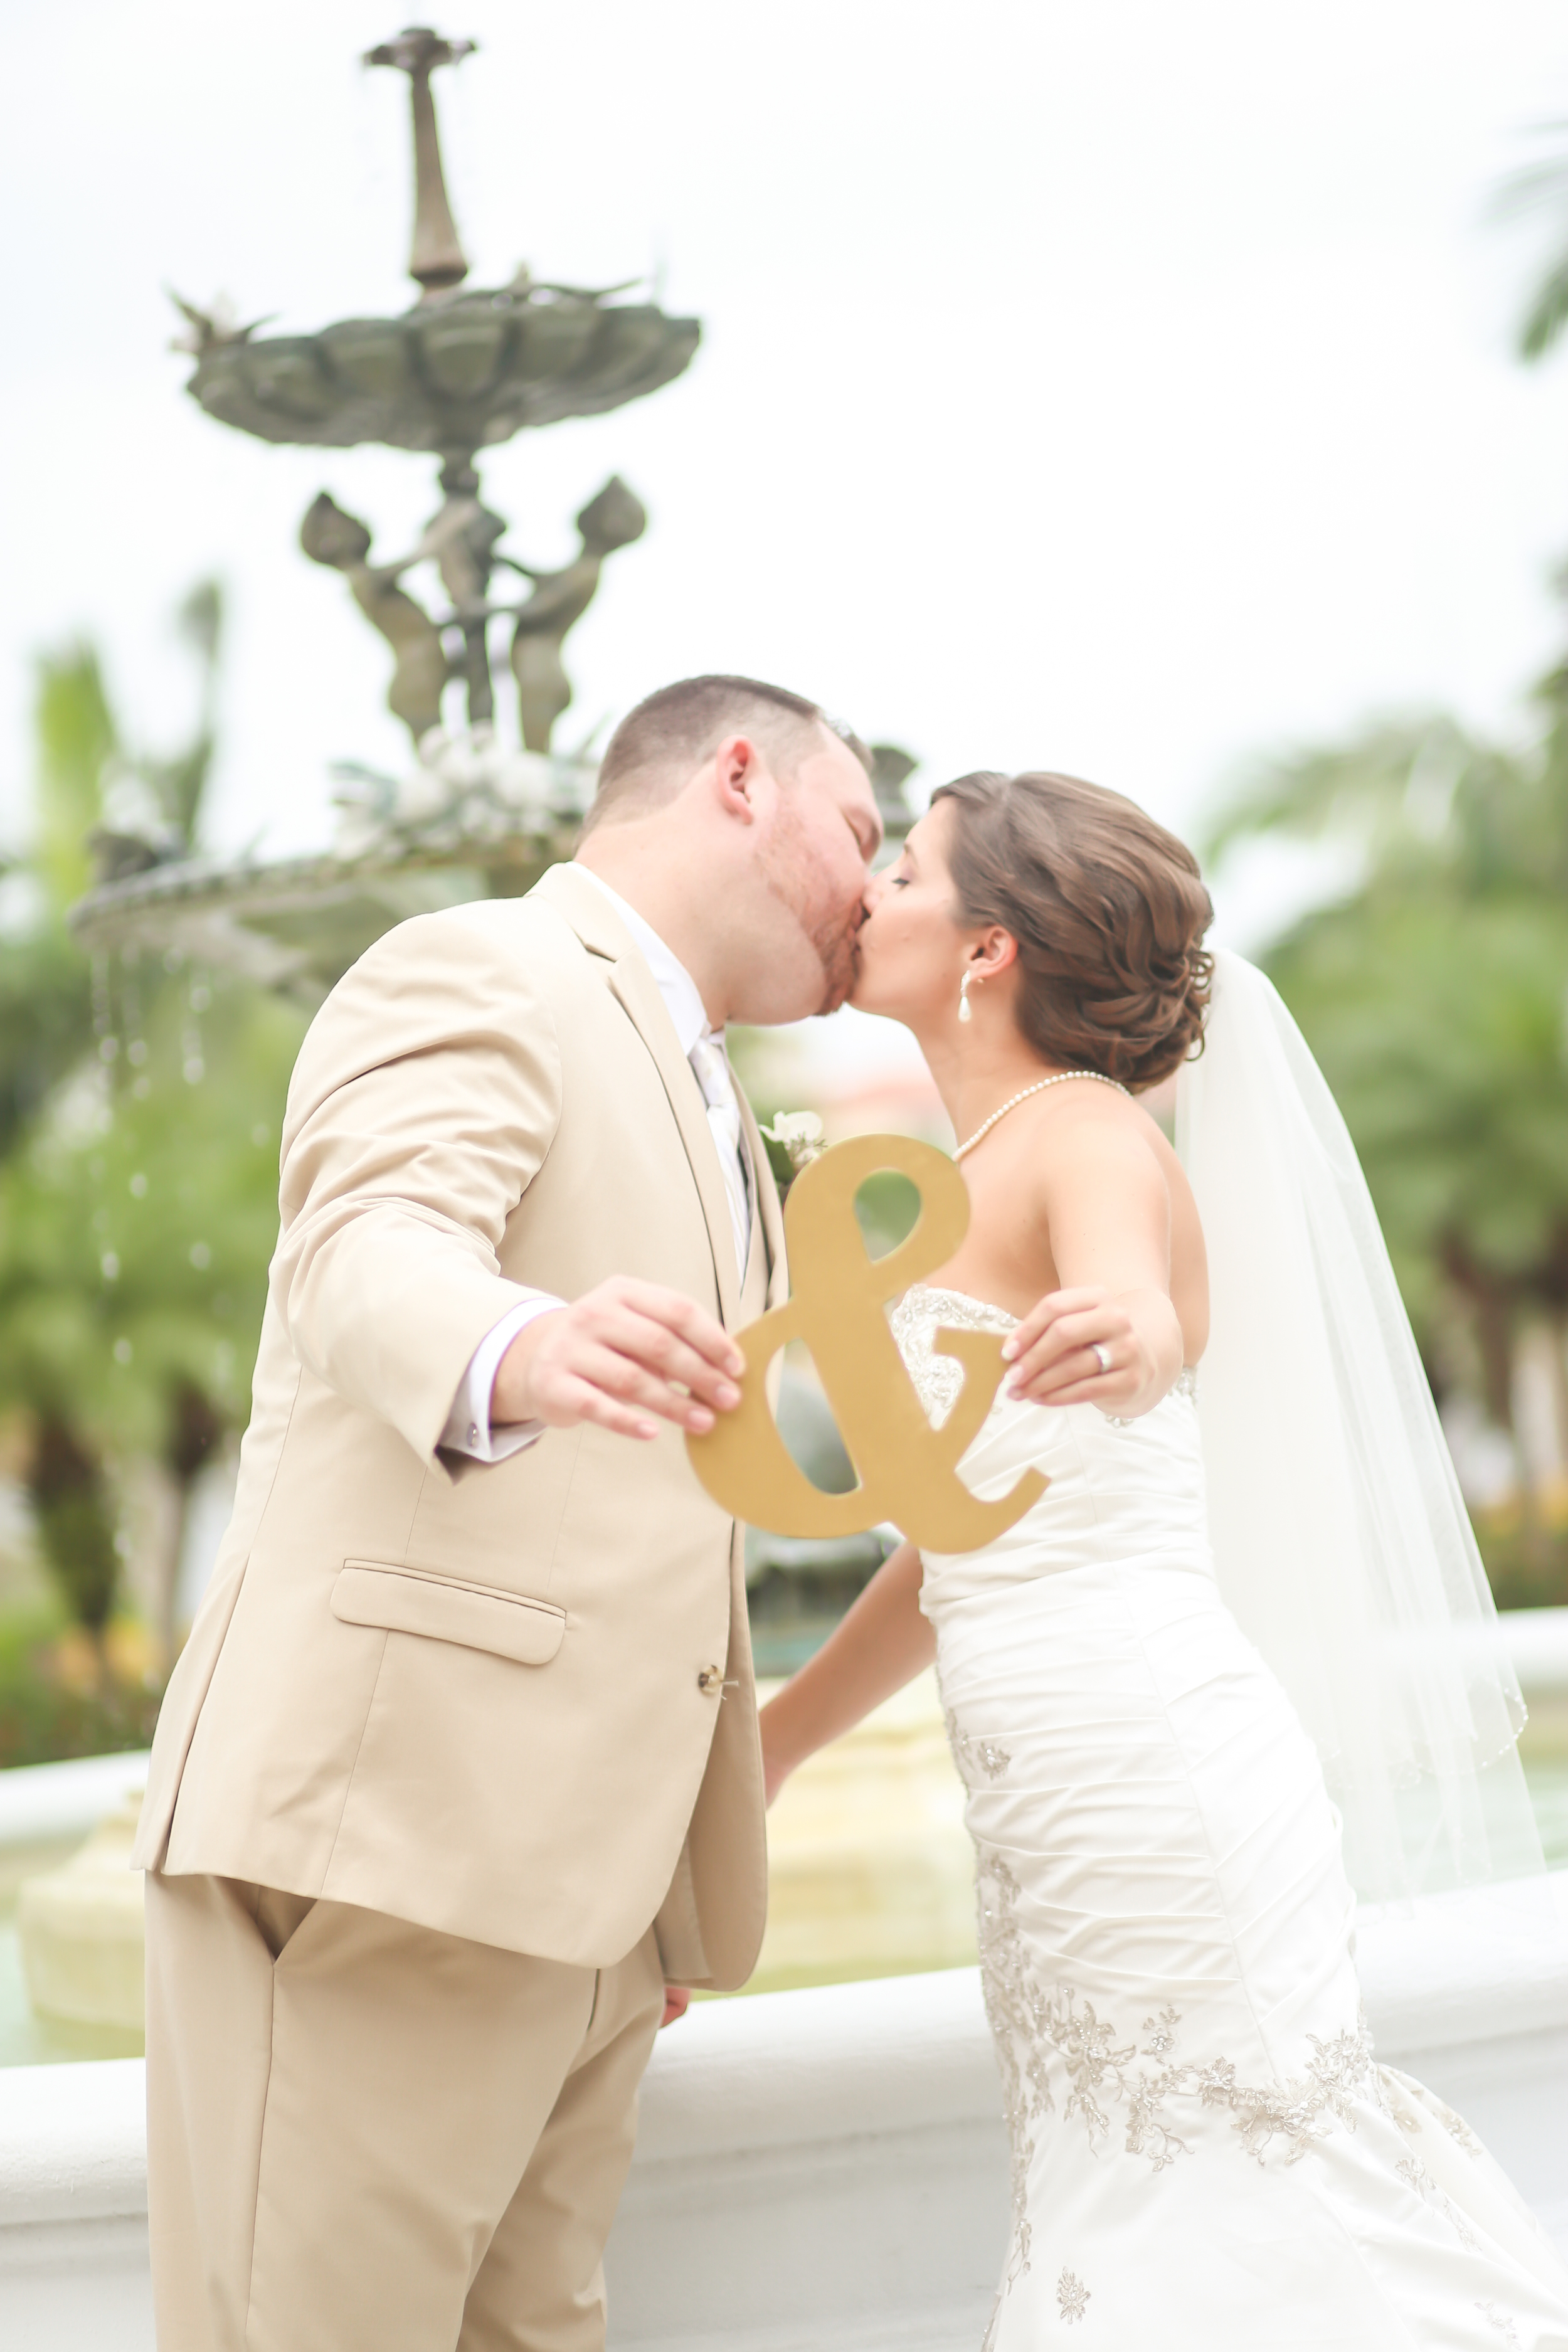 The couple shared a first look in the beautiful Hollis Gardens before the wedding